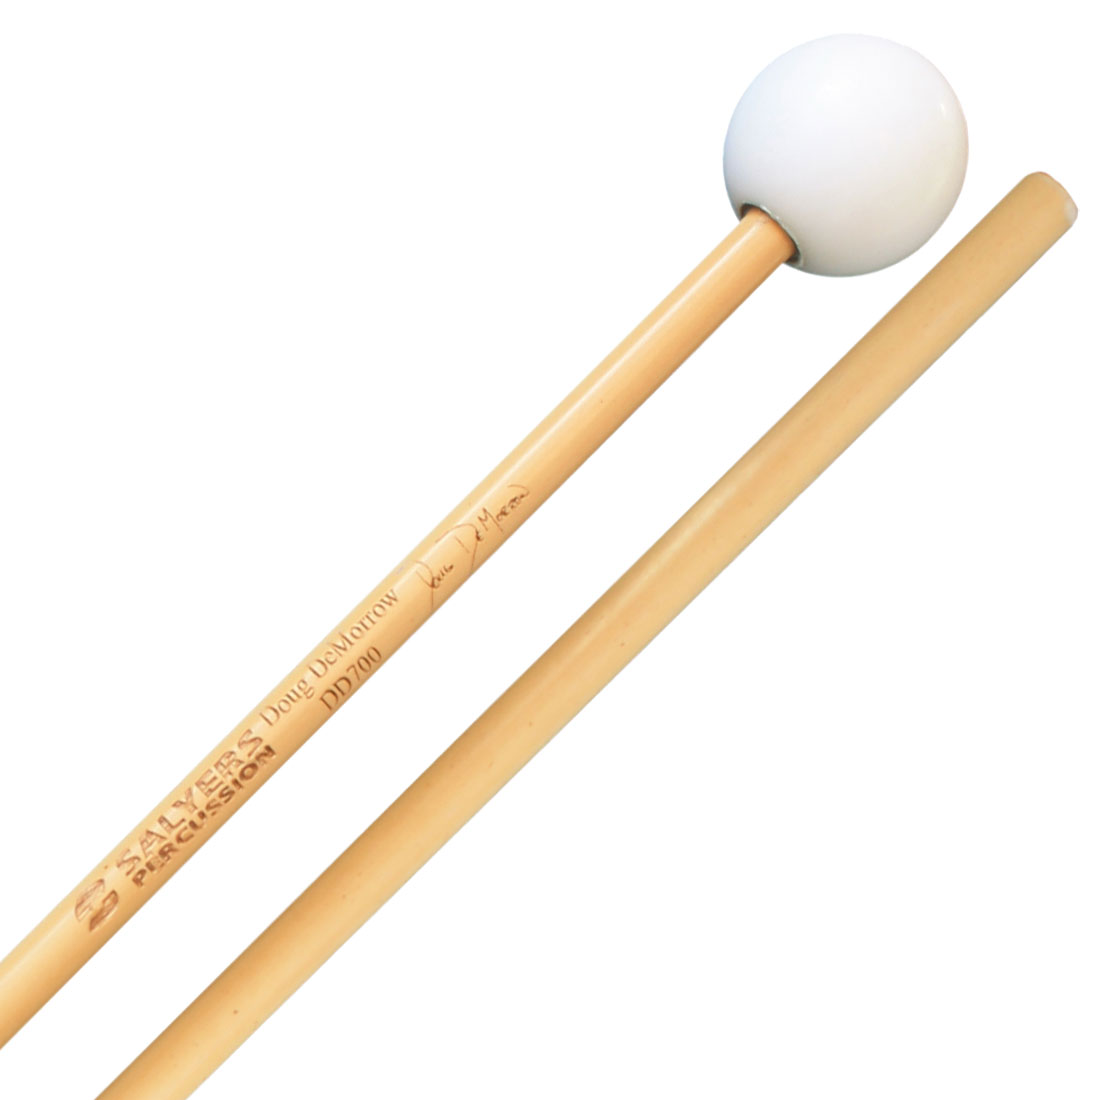 Salyers Percussion Doug DeMorrow Weighted Delrin Bell (Glockenspiel) Mallets